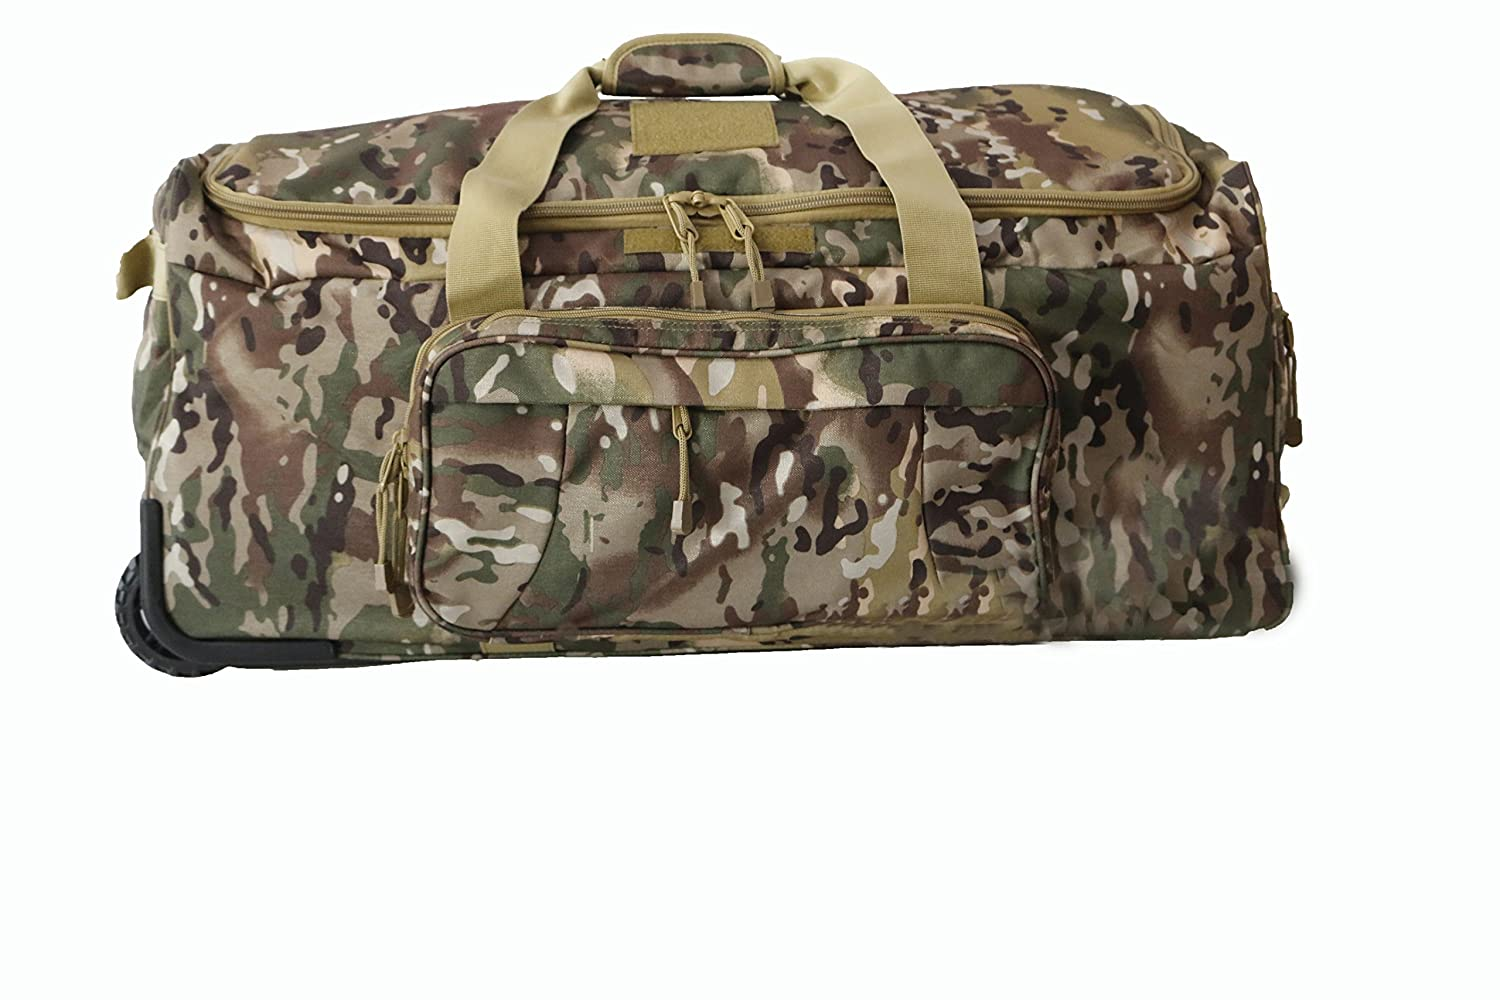 Armycamousa Military Duffle Bag With Wheels